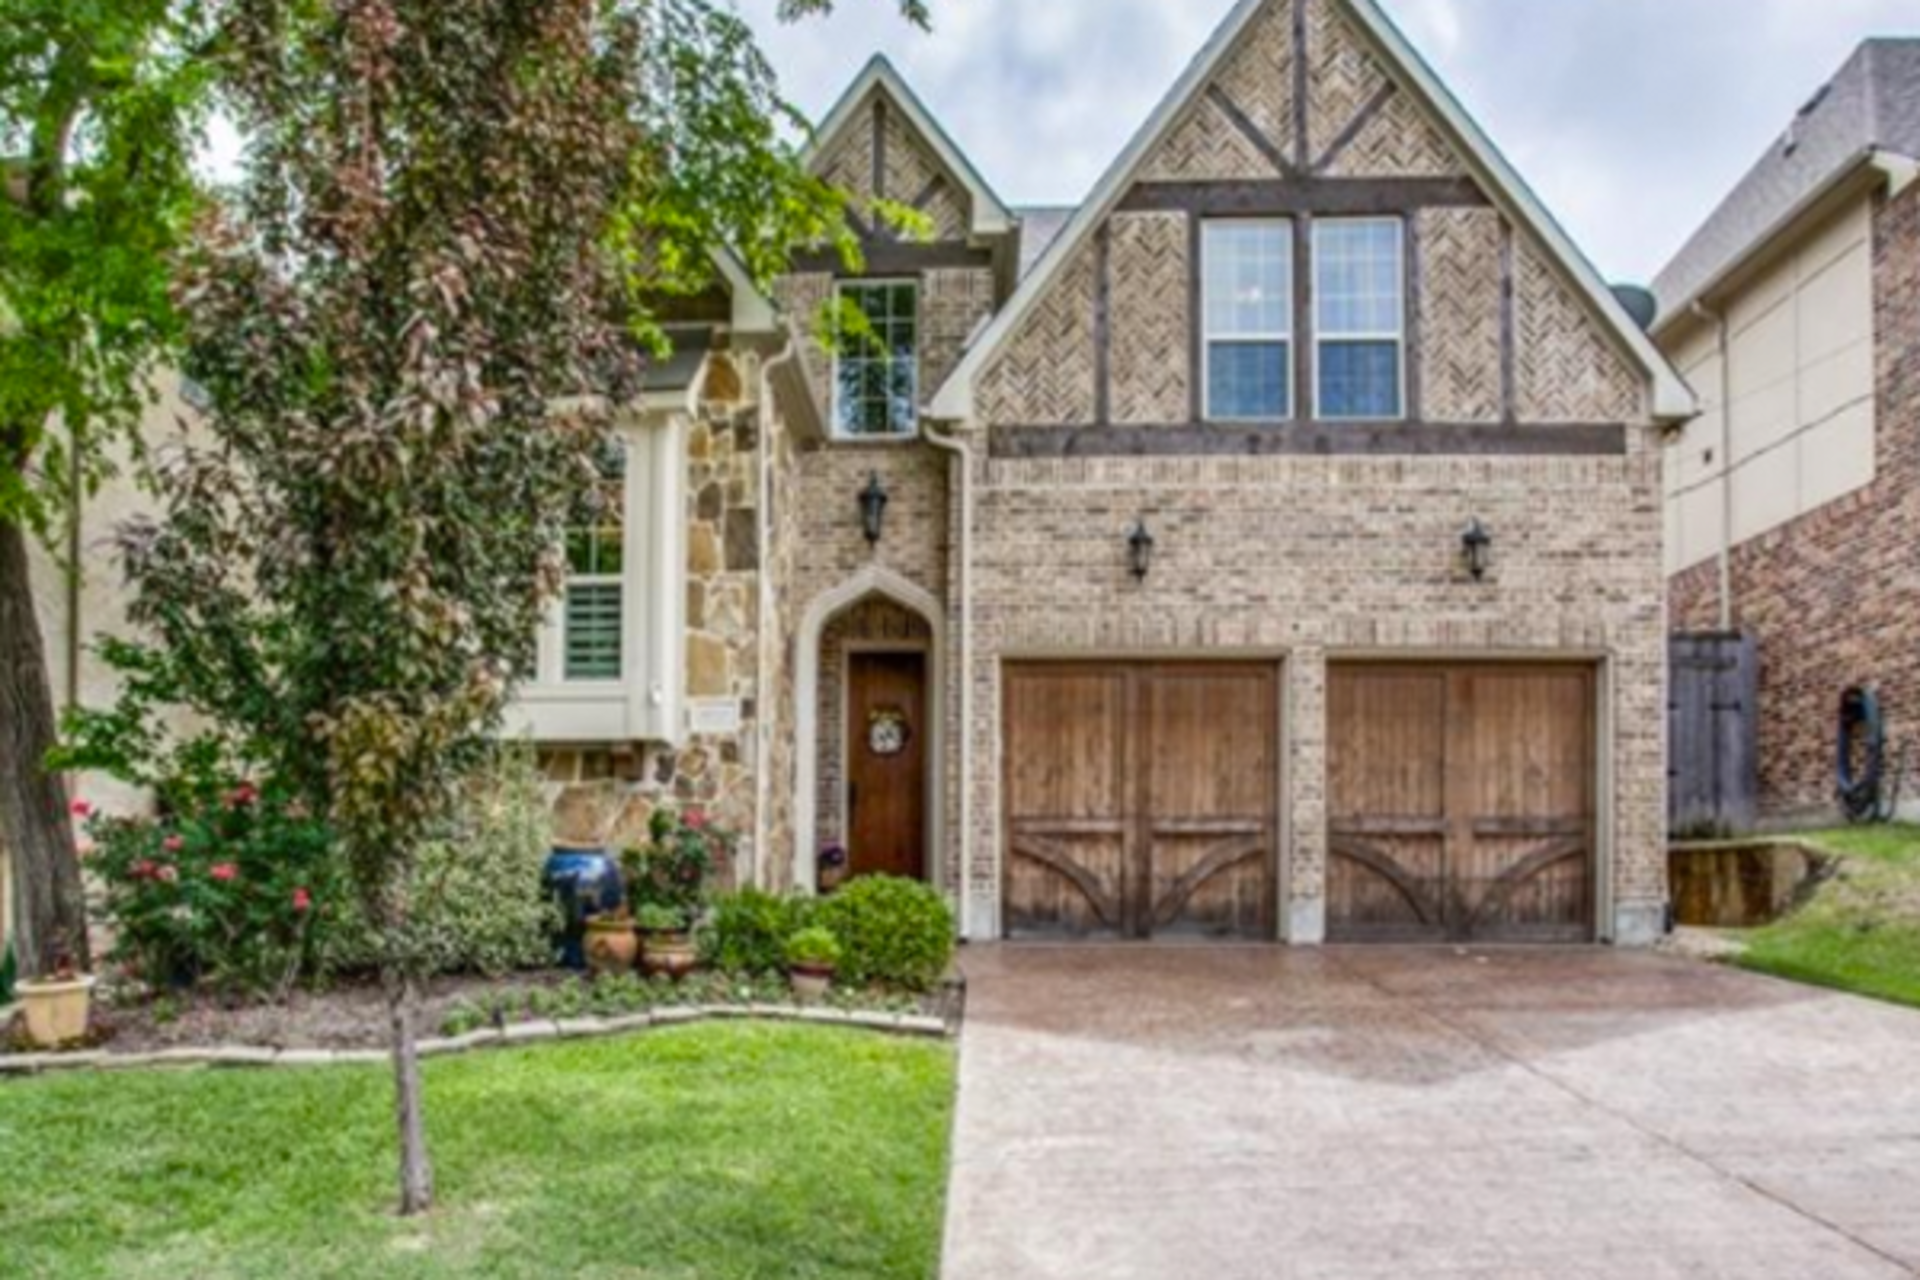 Top 5 Neighborhoods for Young Families in Dallas